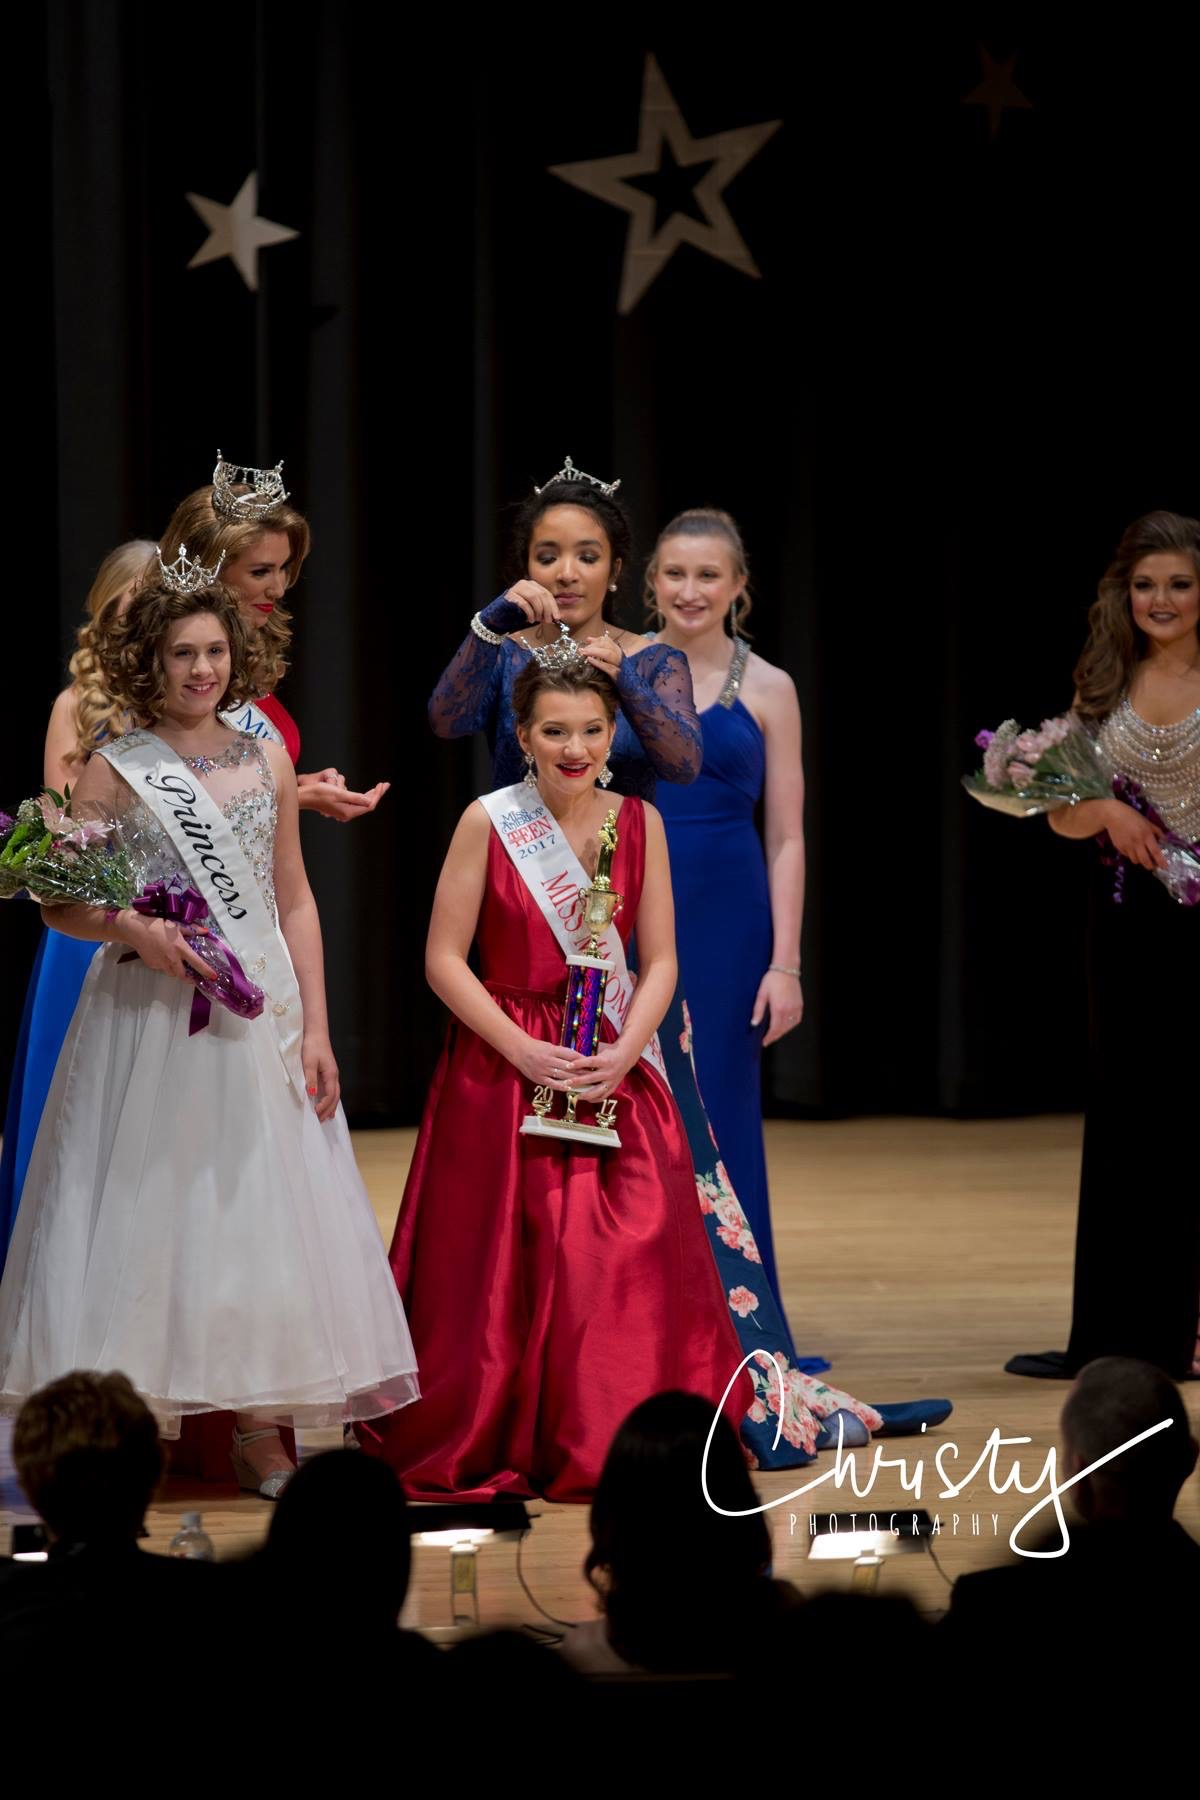 Congrats to the 2017 Miss Macomb Outstanding Teen, Emily Jones!  Photo Credit: C hristy Photography ,  Christy Bozard Heaton